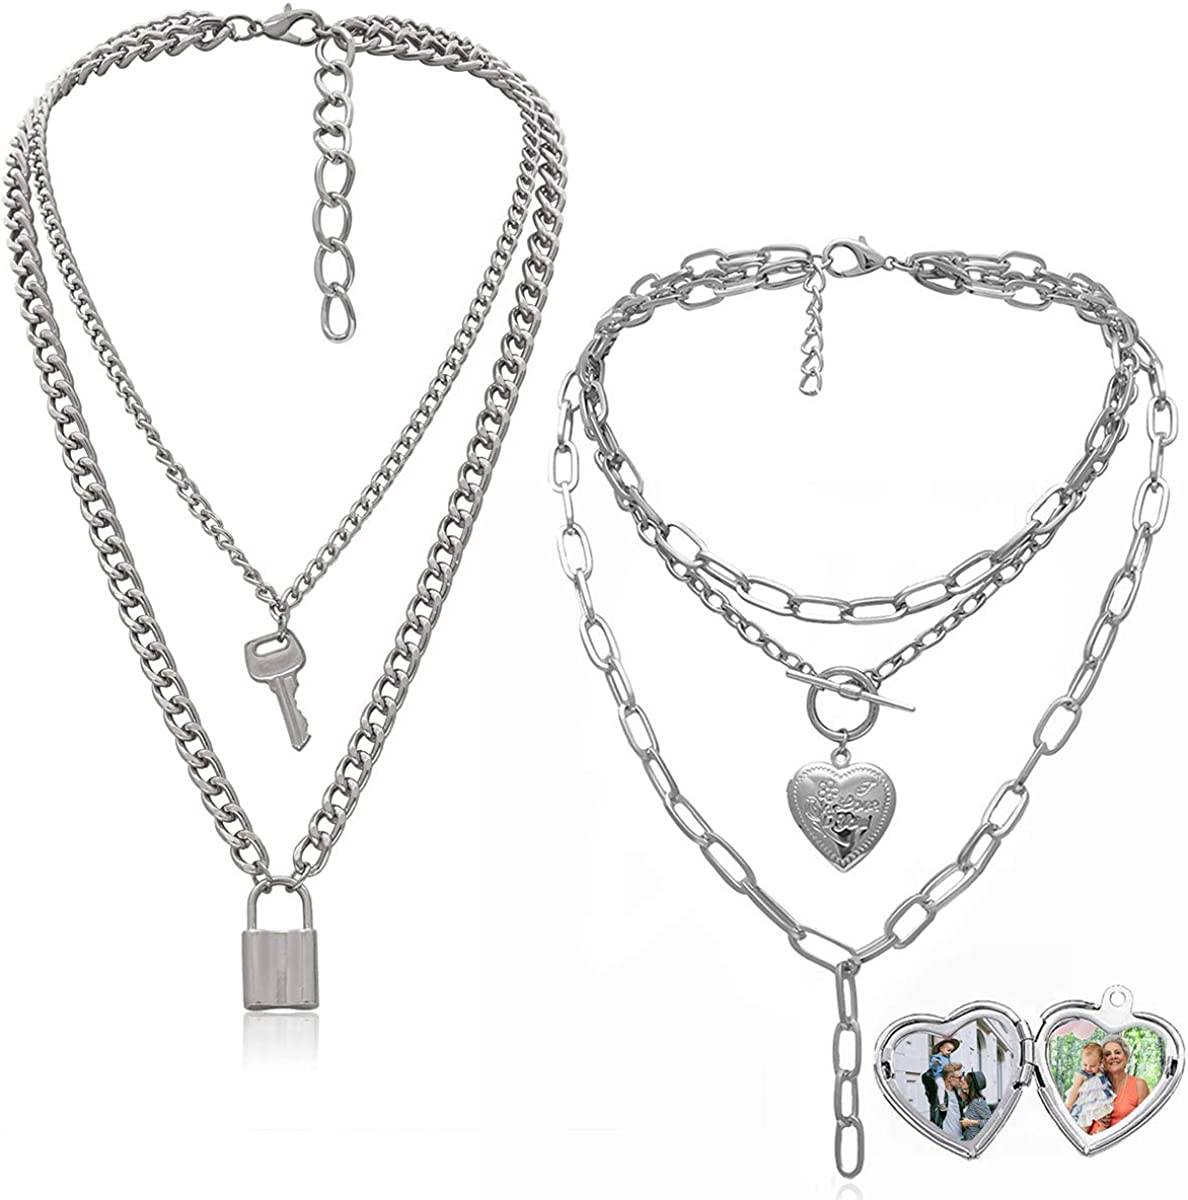 Ingemark Statement Cool Punk Chunky Toggle Chain Wo for Necklace Inexpensive Max 63% OFF